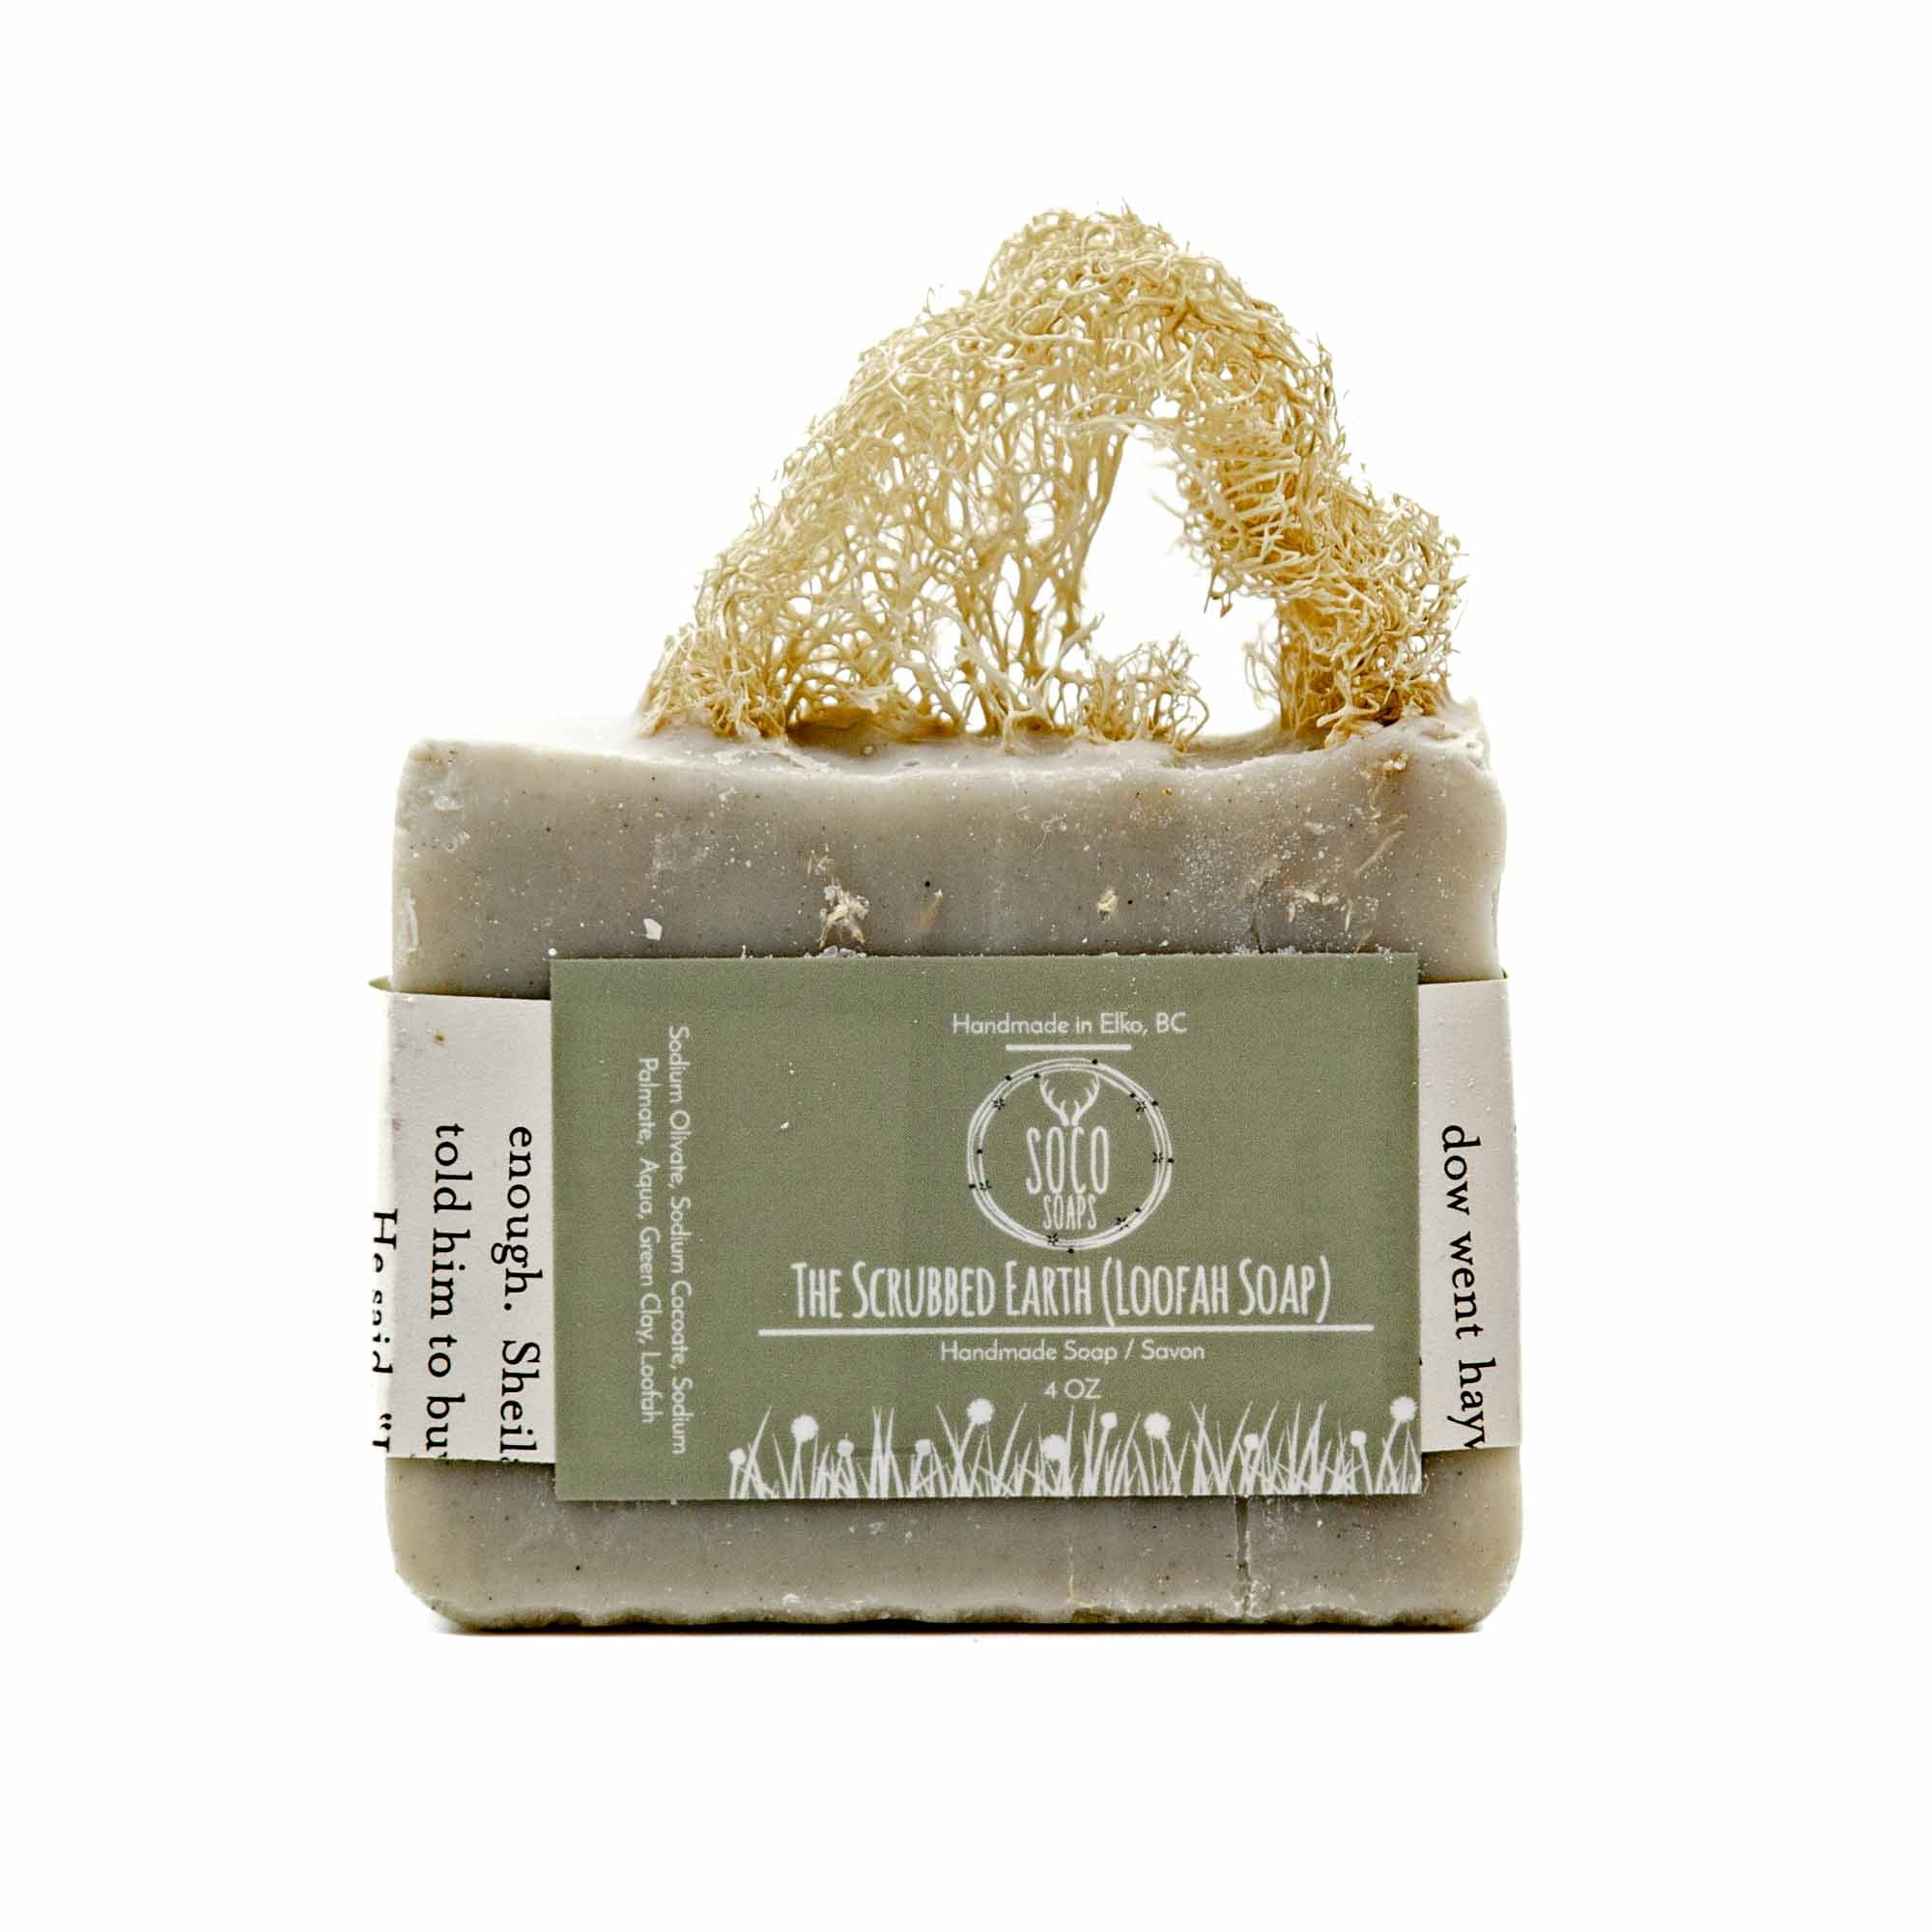 Soco Soaps The Scrubbed Earth Soap (Loofah) - Mortise And Tenon